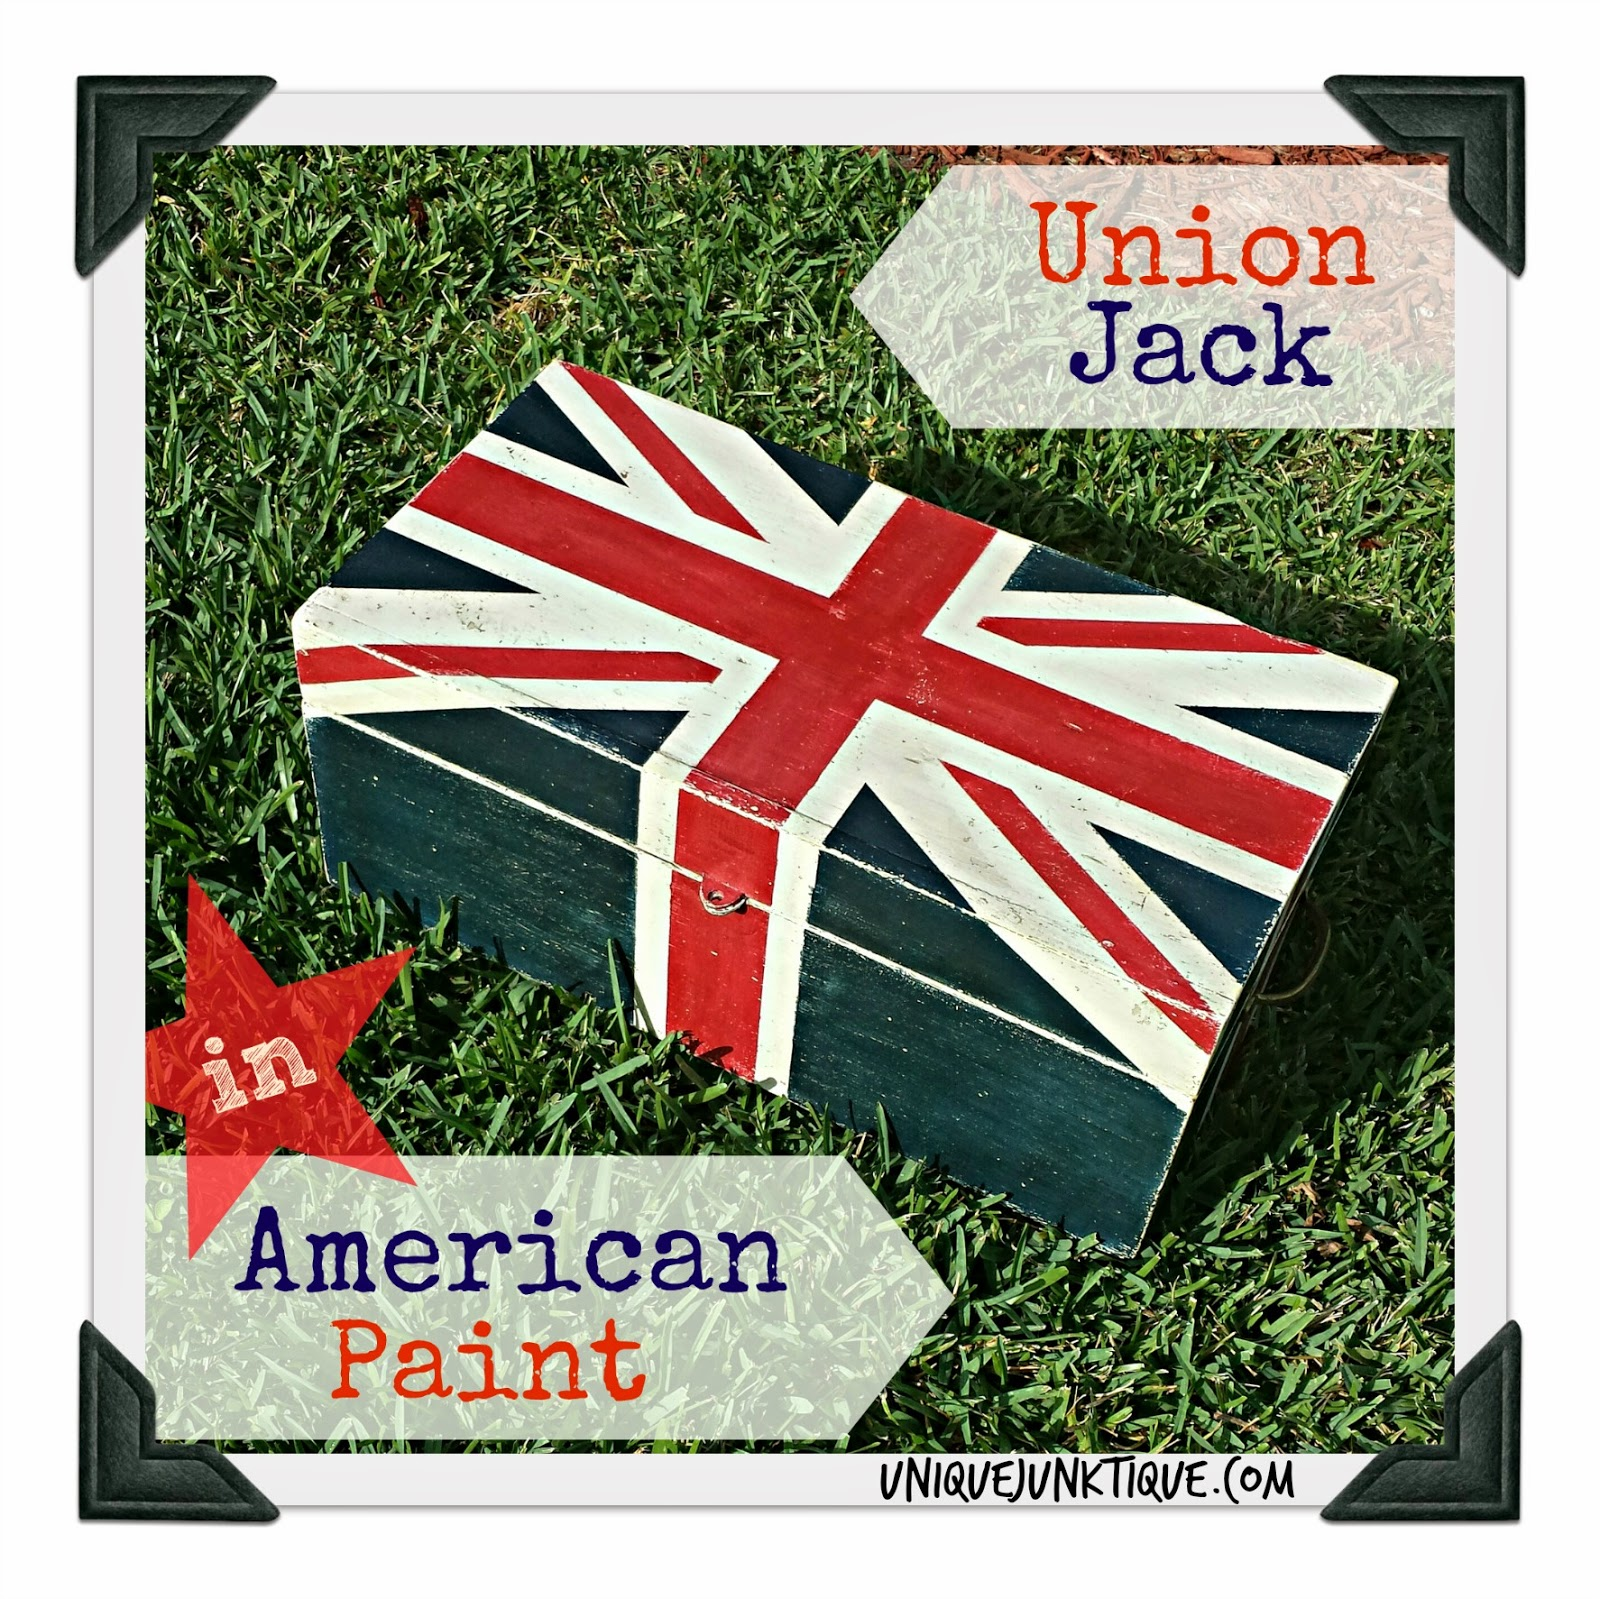 Union Jack In American Paint by Unique Junktique